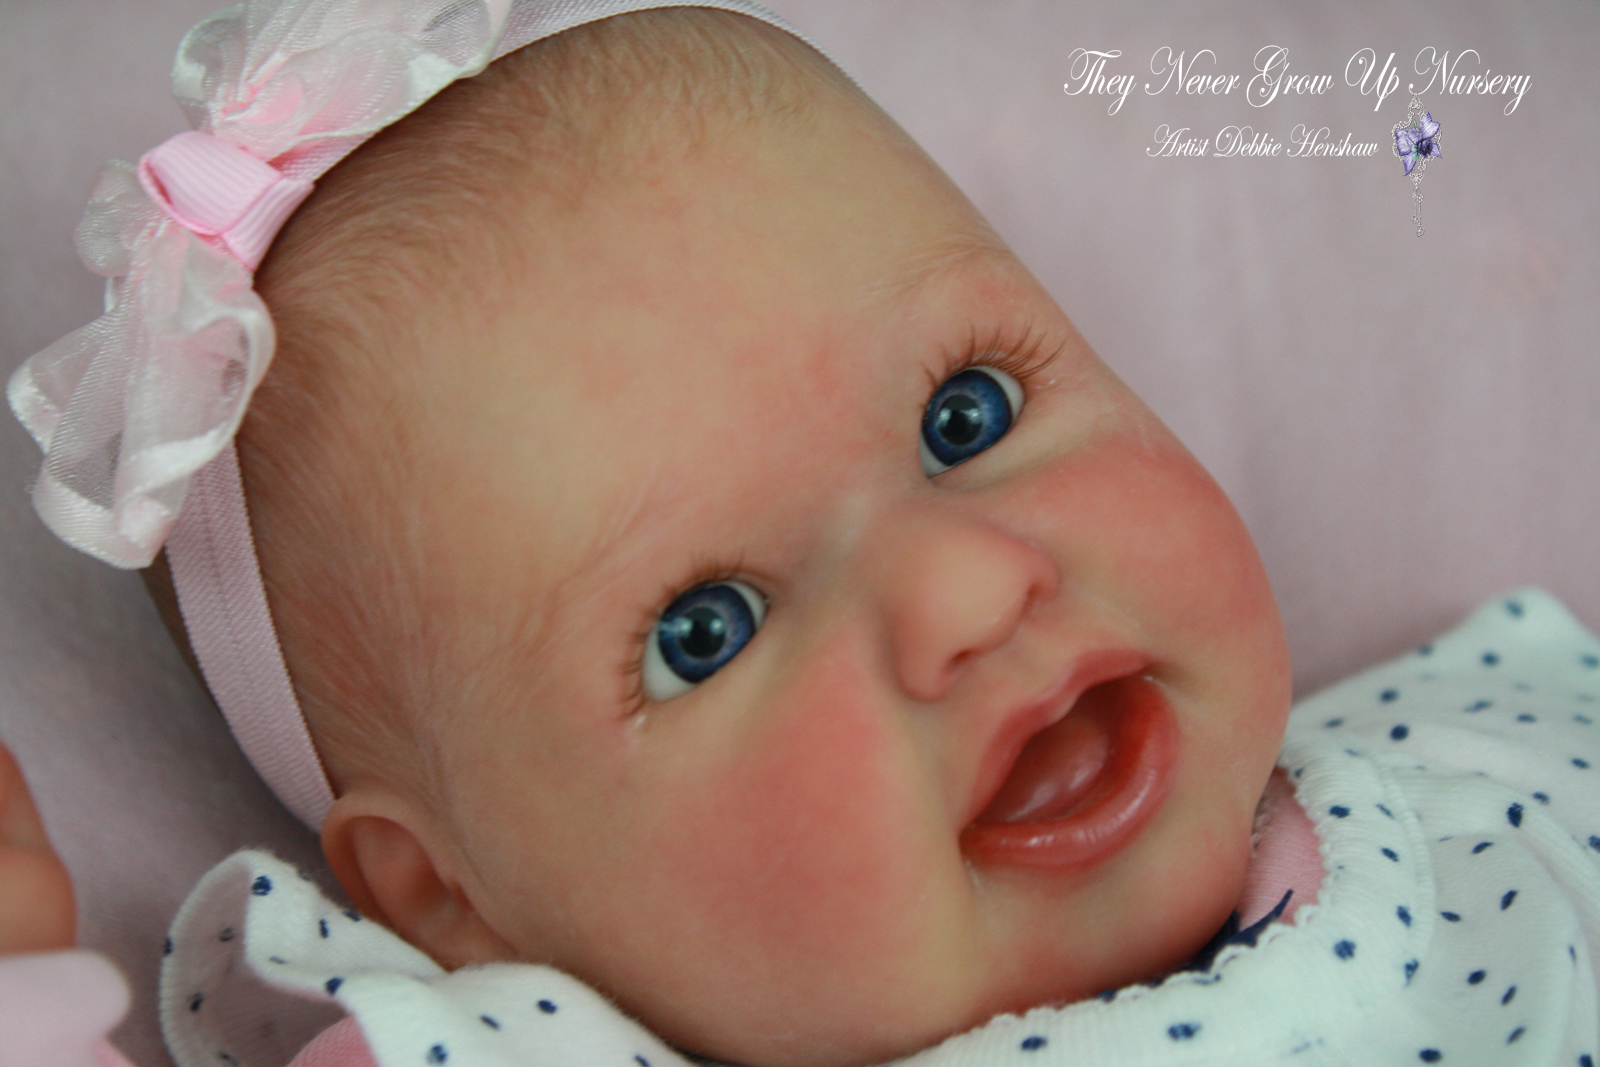 9f4da1102471 Tori is created from the same 15 inch Berenguer sculpt that I created my  first reborn doll from a little over 12 years ago.